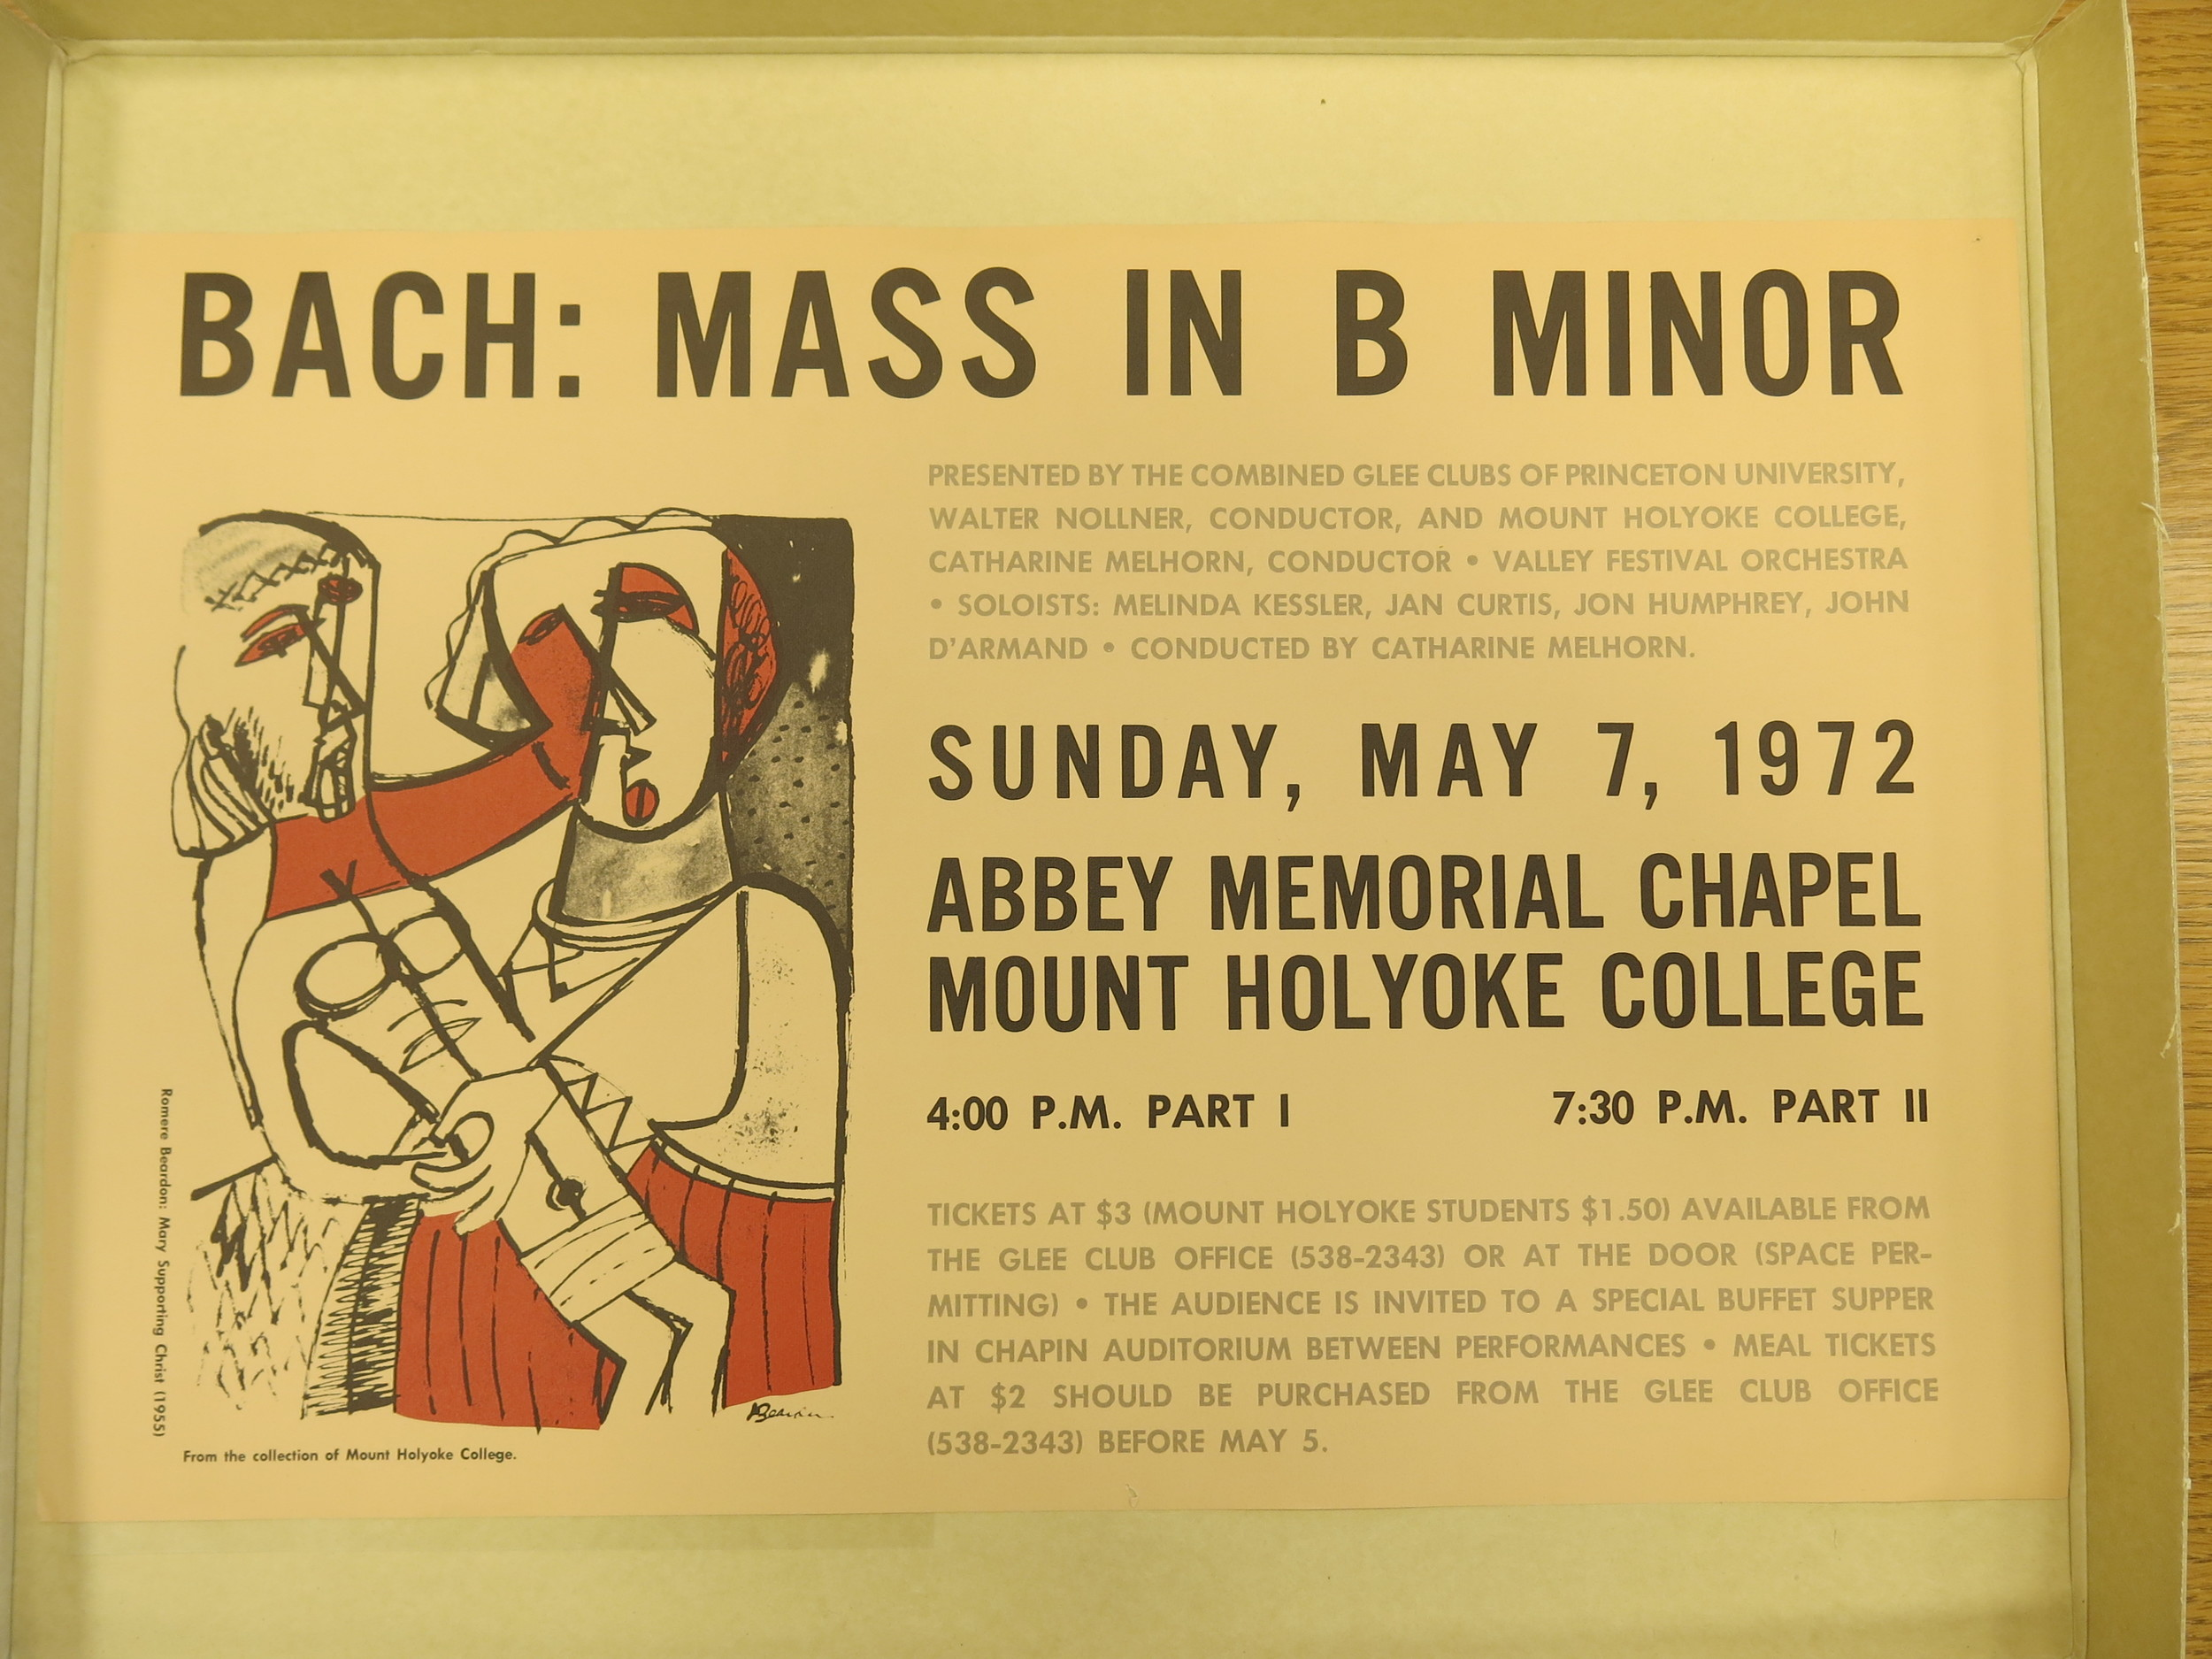 Bach B minor mass 1972 poster.jpeg